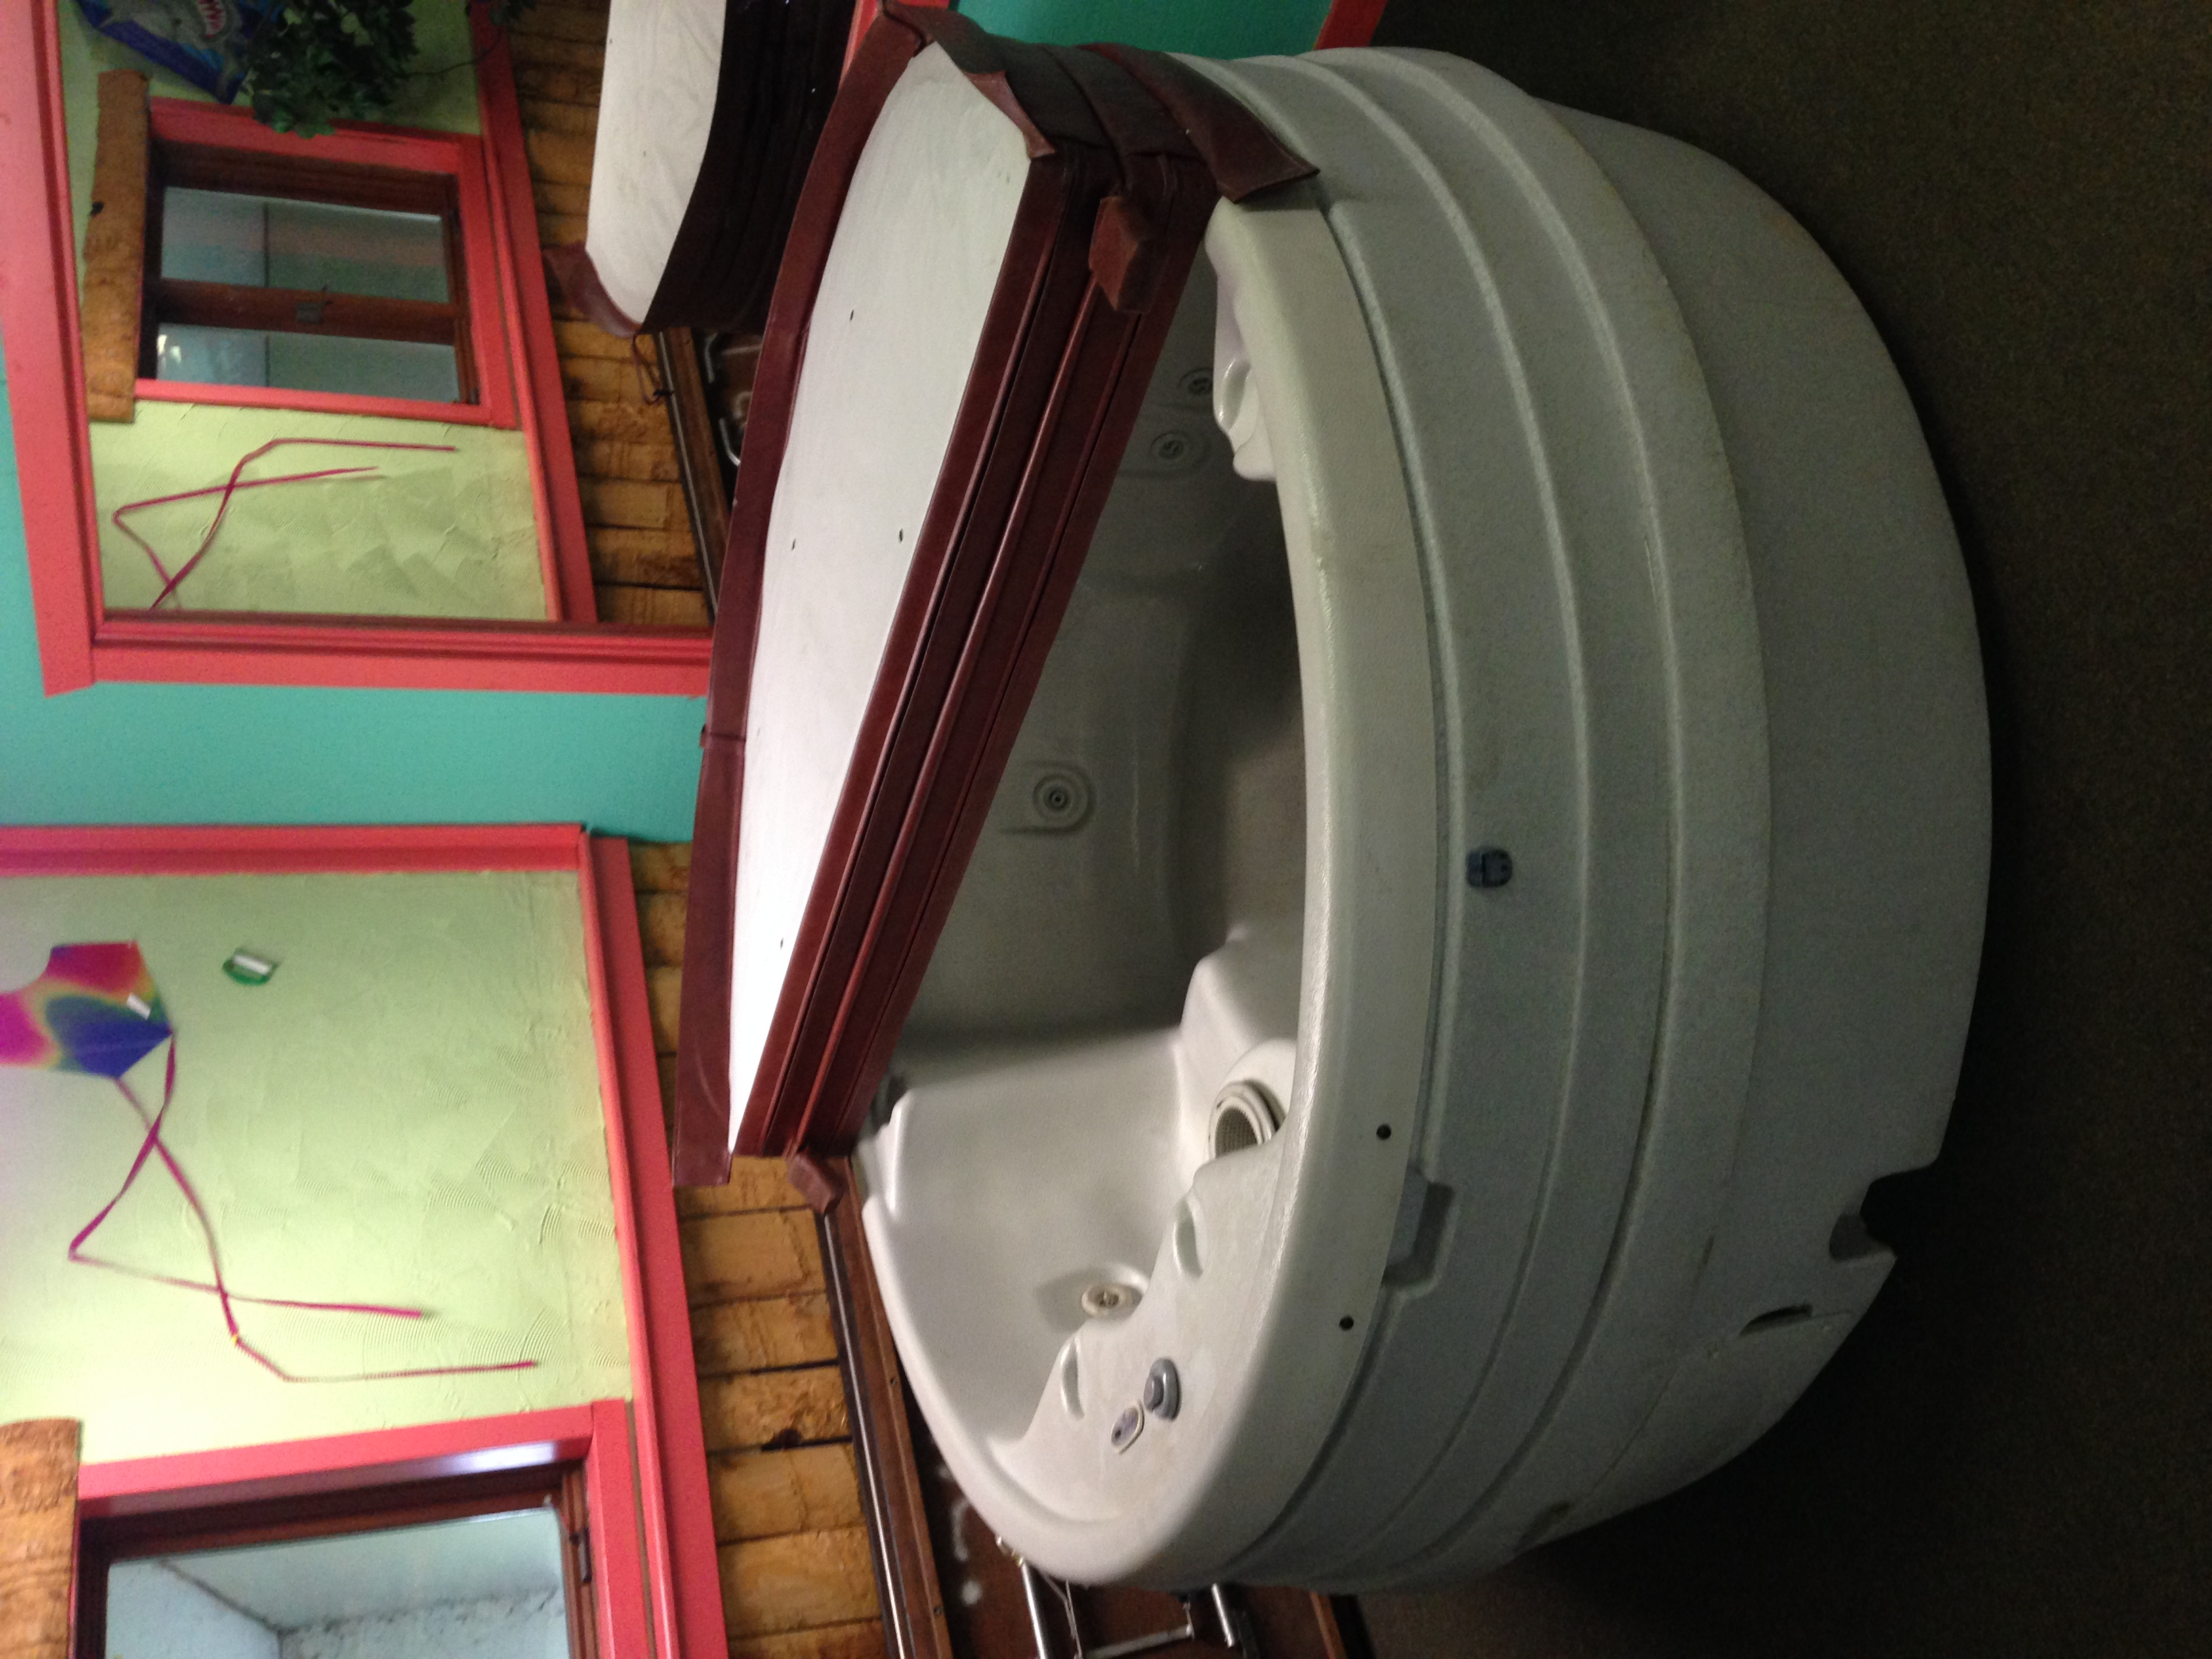 Dream Maker used hot tub Ready for delivery